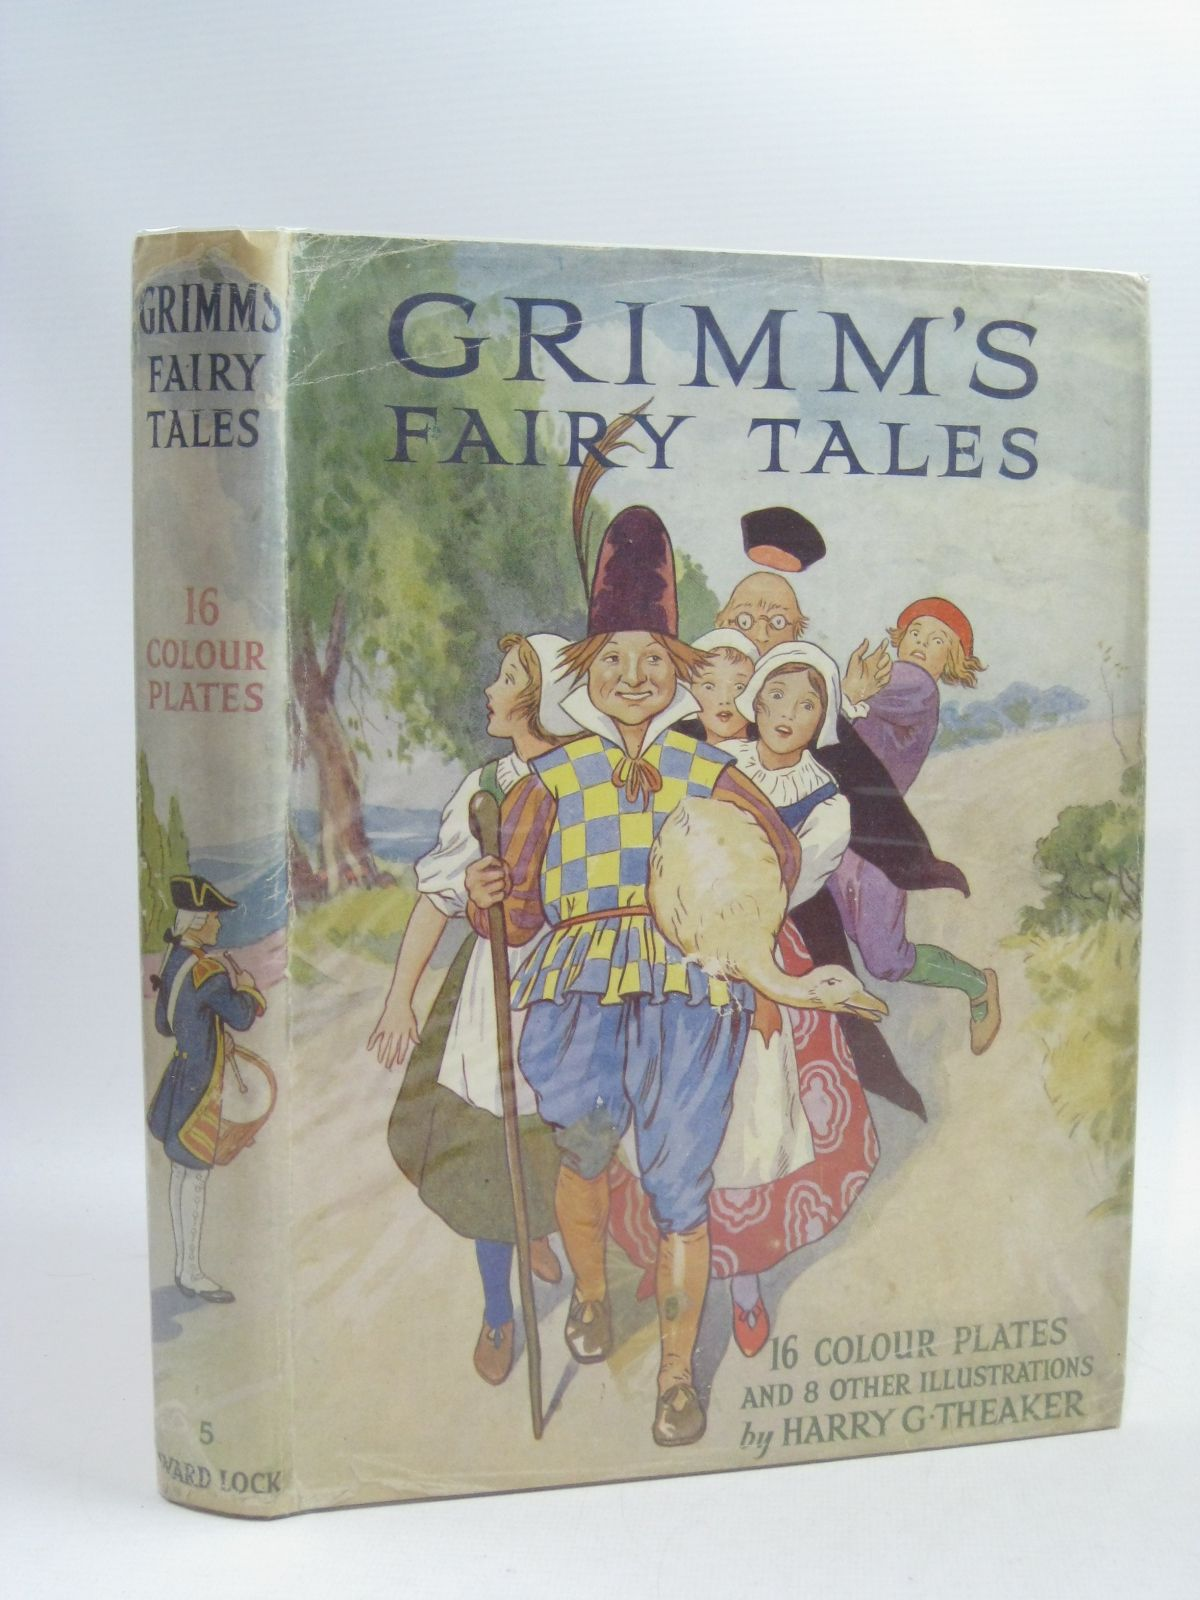 magic in the grimms brothers tales In storytime issue 34, we feature a brothers grimm fairy tale, which, at least in the uk, is one of their lesser-known stories it was originally called jorinde and joringel, but we've called it the magic flower kids magazine subscriptions, brothers grimm, grimm fairy tales, magazine subscriptions for kids in the magic flower,.